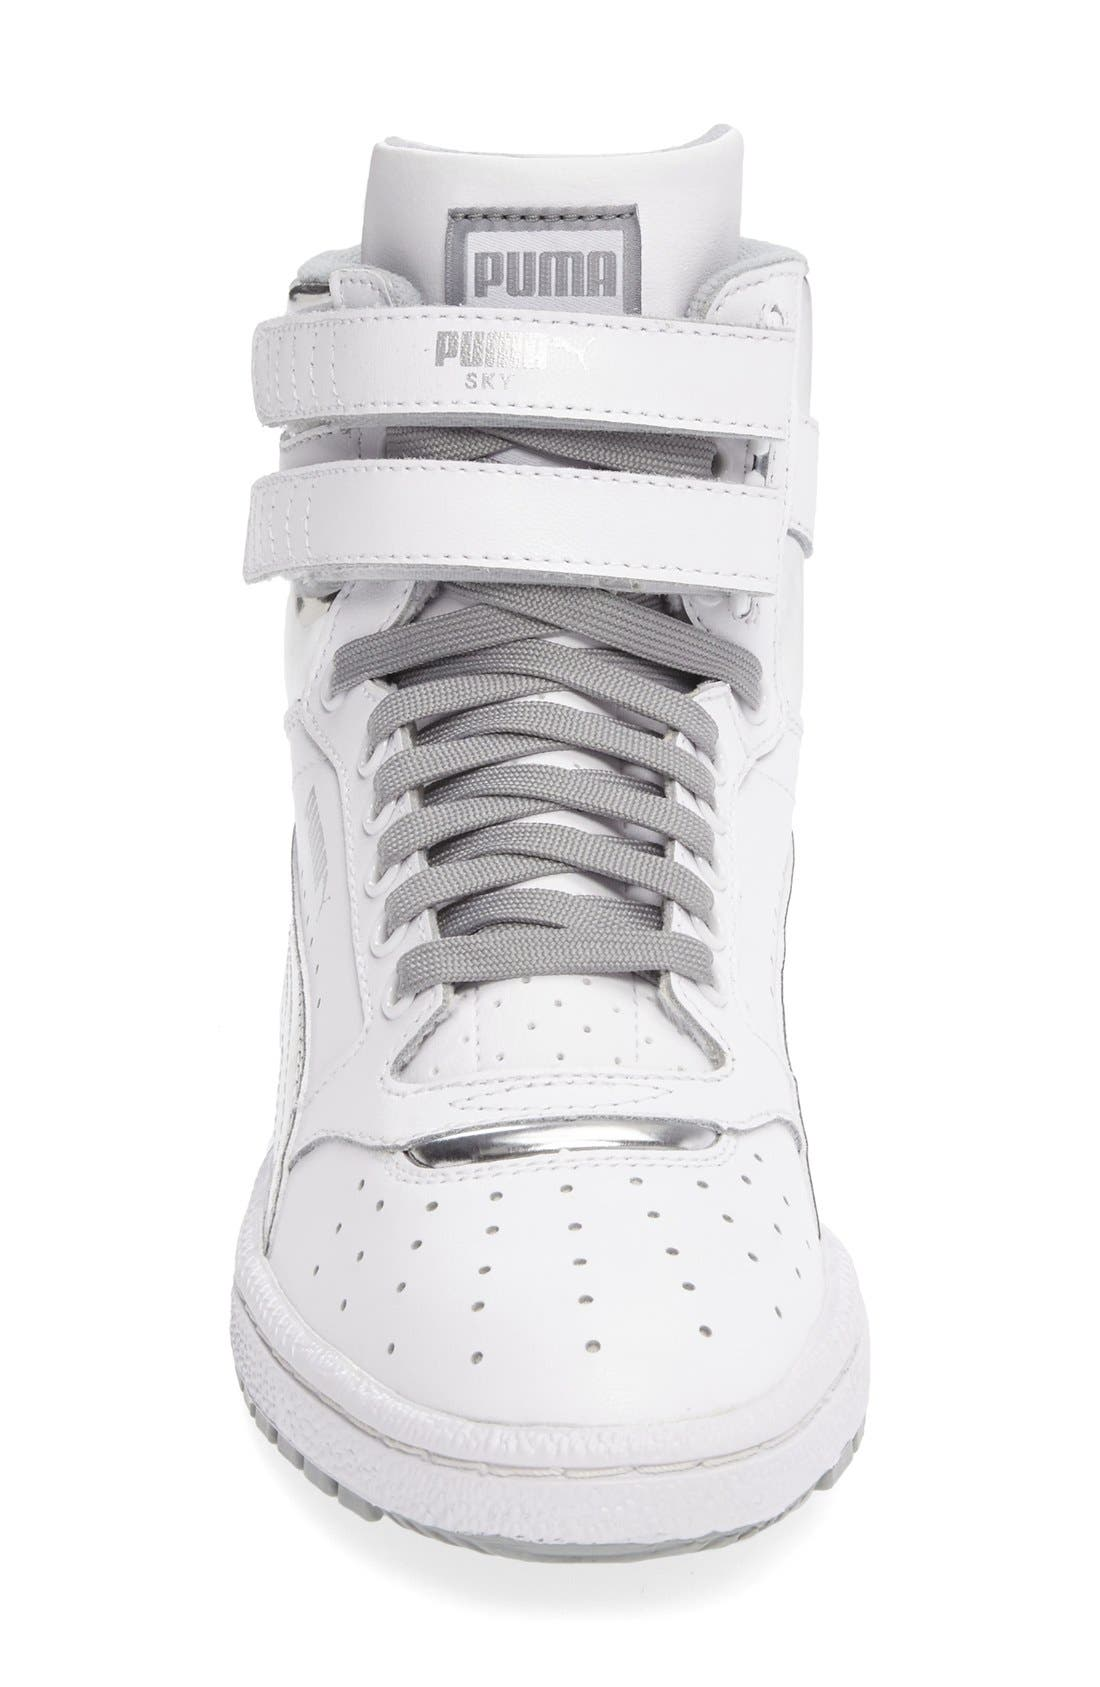 Sky II Hi Foil Jr Sneaker,                             Alternate thumbnail 3, color,                             Puma White-Puma Silver